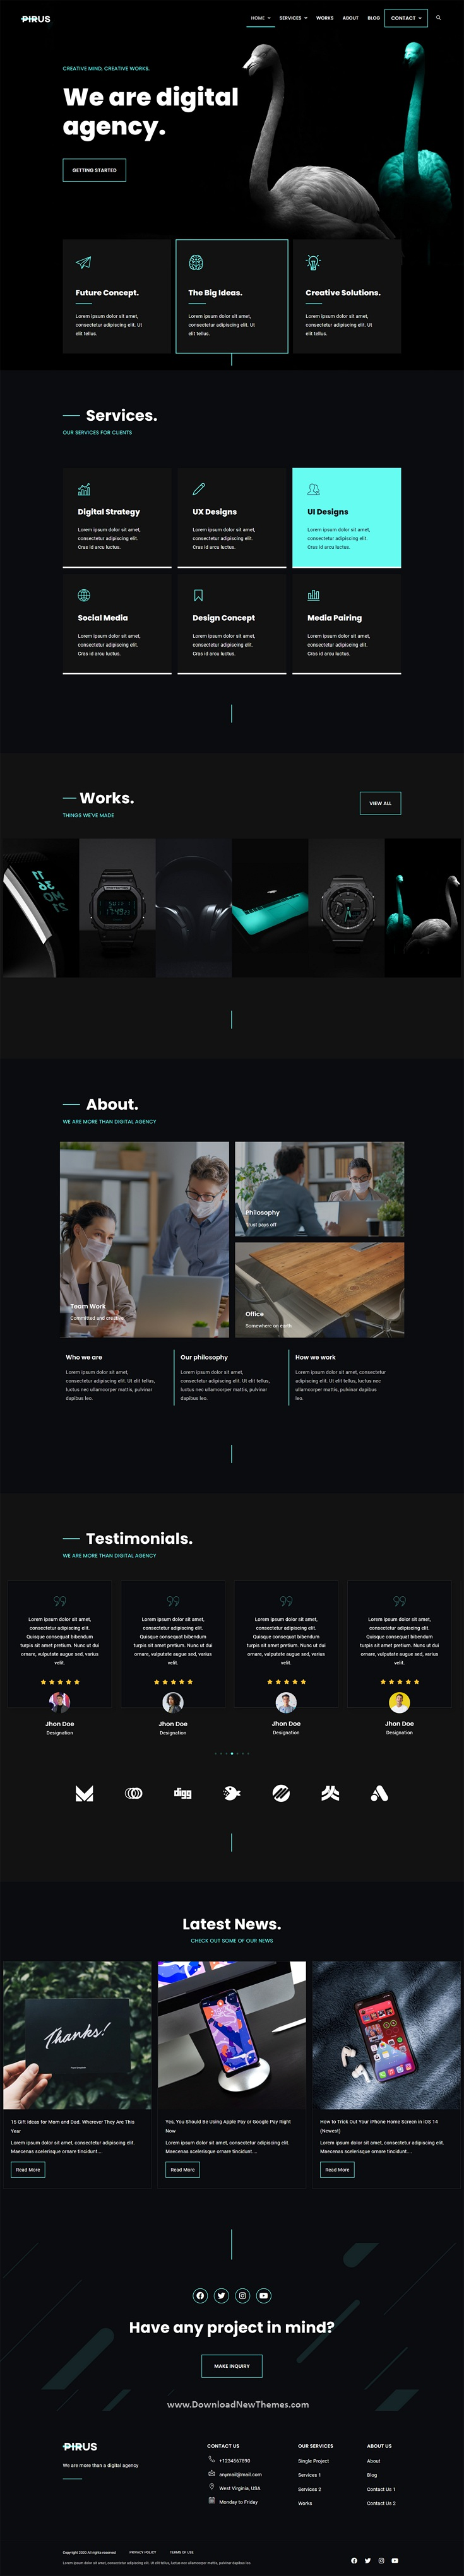 Digital Agency Elementor Template Kit